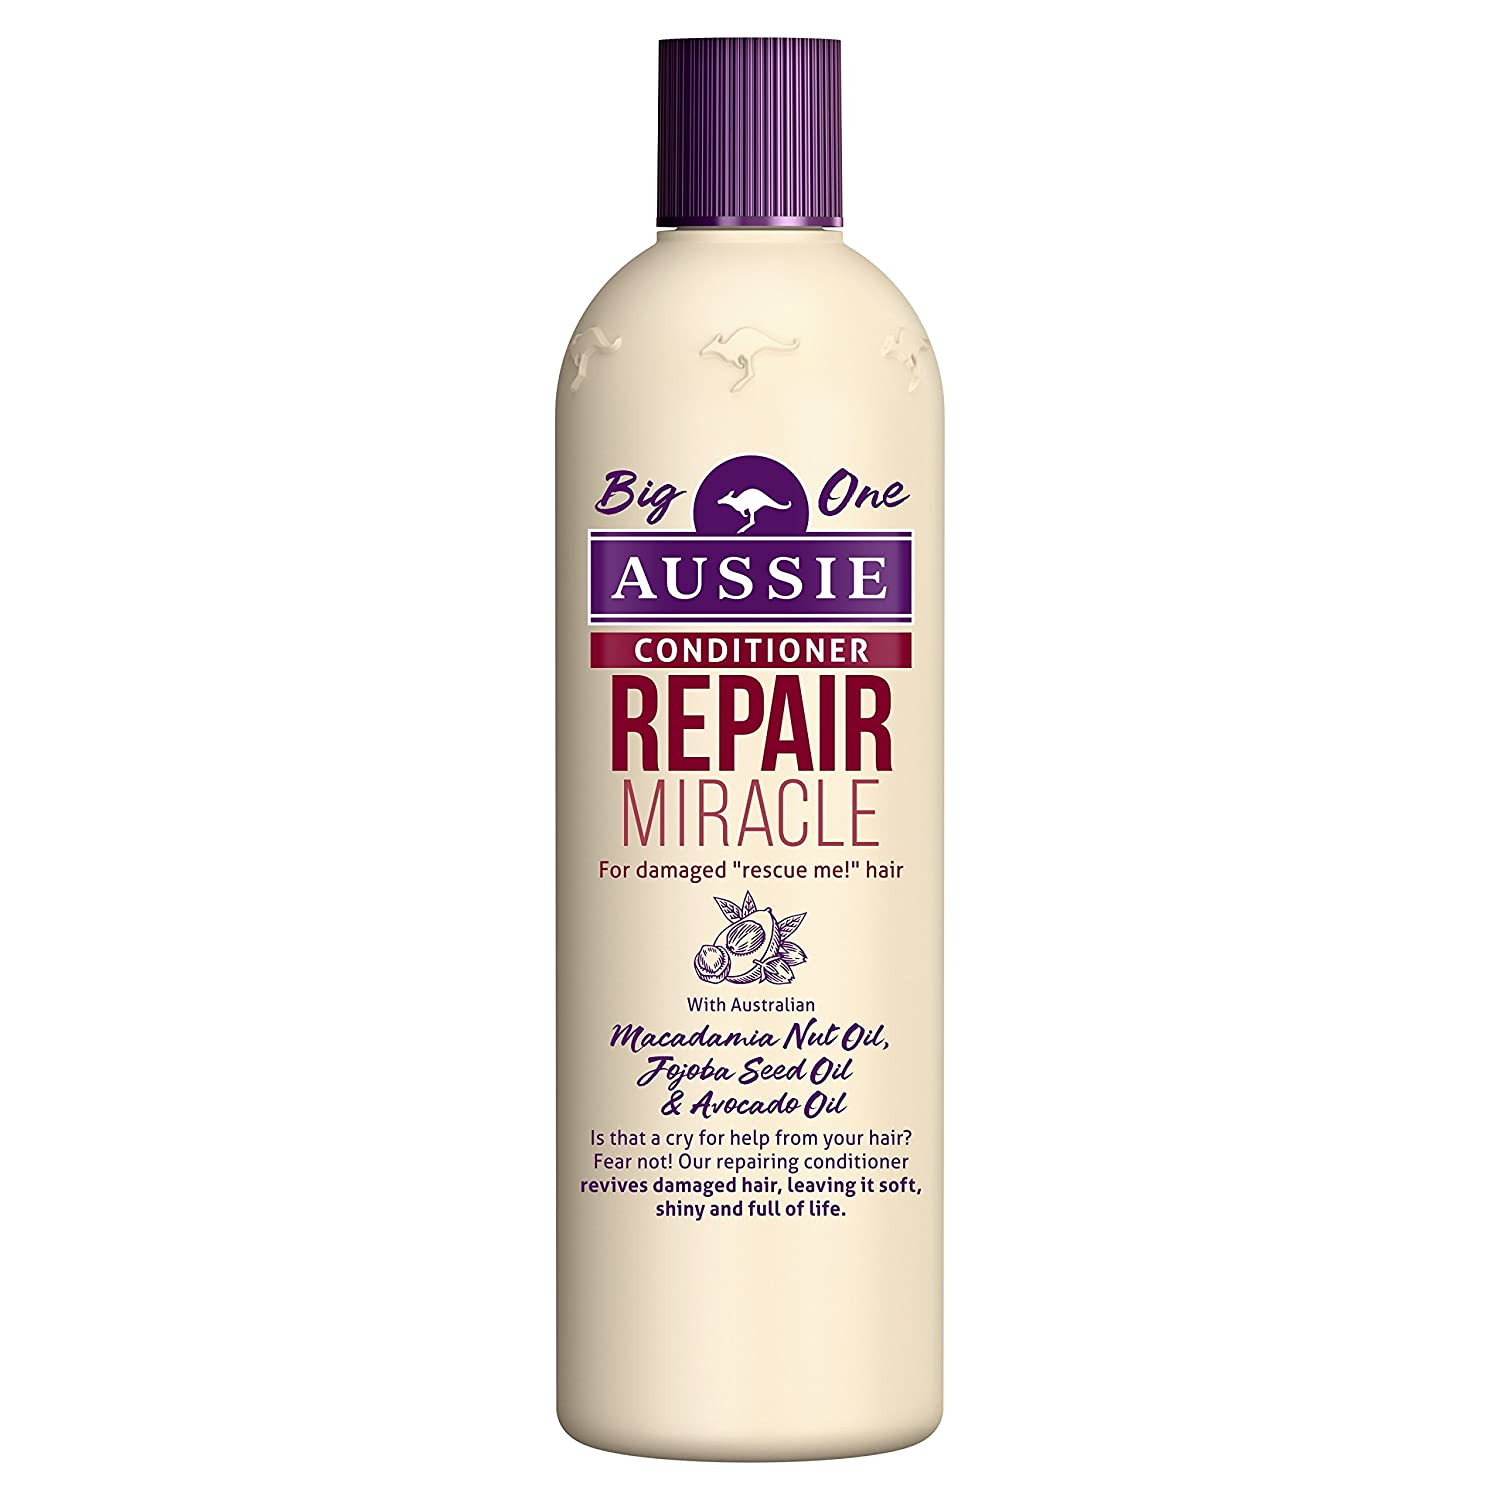 Aussie Repair Miracle Conditioner for Damaged Hair, 400 ml Procter & Gamble 81526060